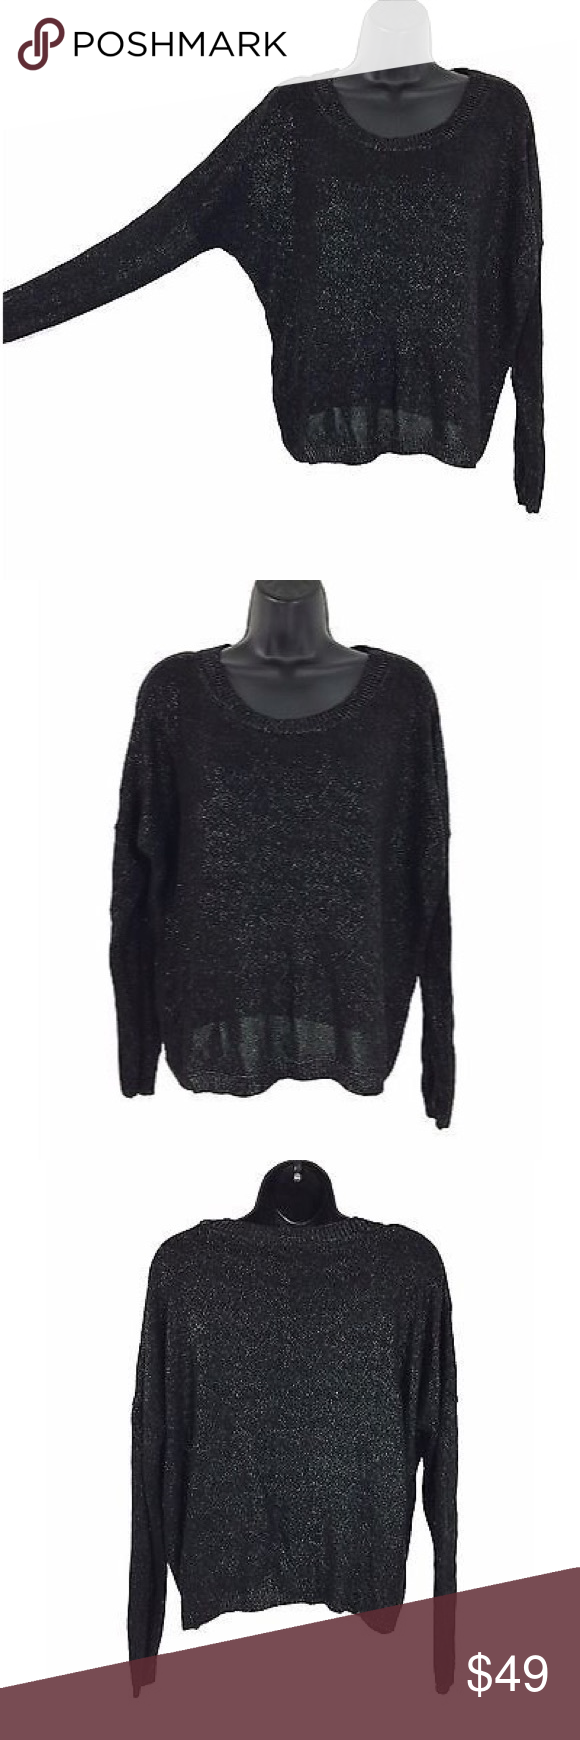 Vince Medium Sweater Black Rayon Vince Medium Sweater Black Rayon.  In great condition.  Measurements laying flat:  shoulder to shoulder: 28 inches. Pit: 27 inches. Length: 21 inches. Sleeve: 15.5 inches. Vince Sweaters